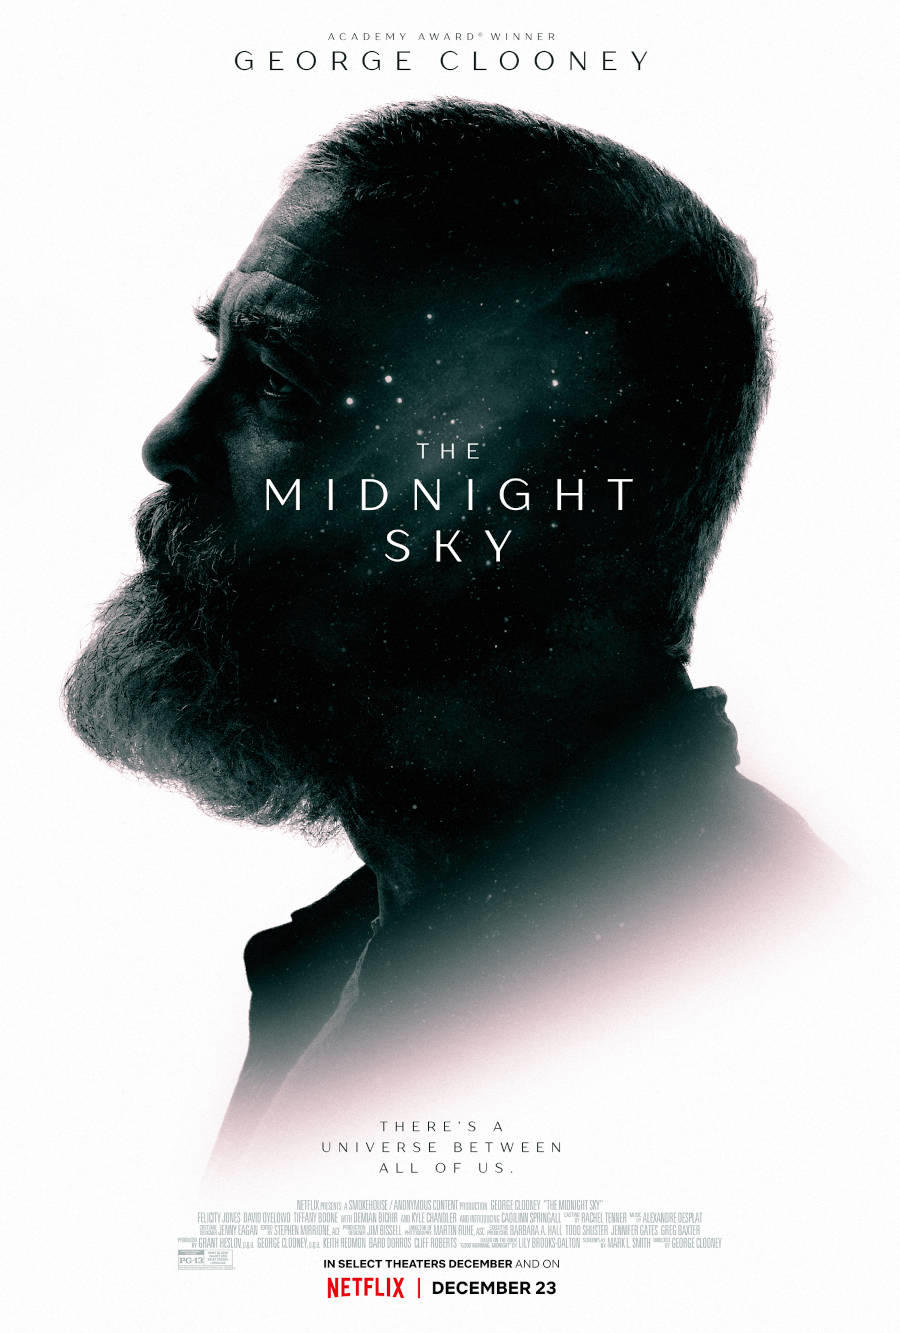 The Midnight Sky poster art